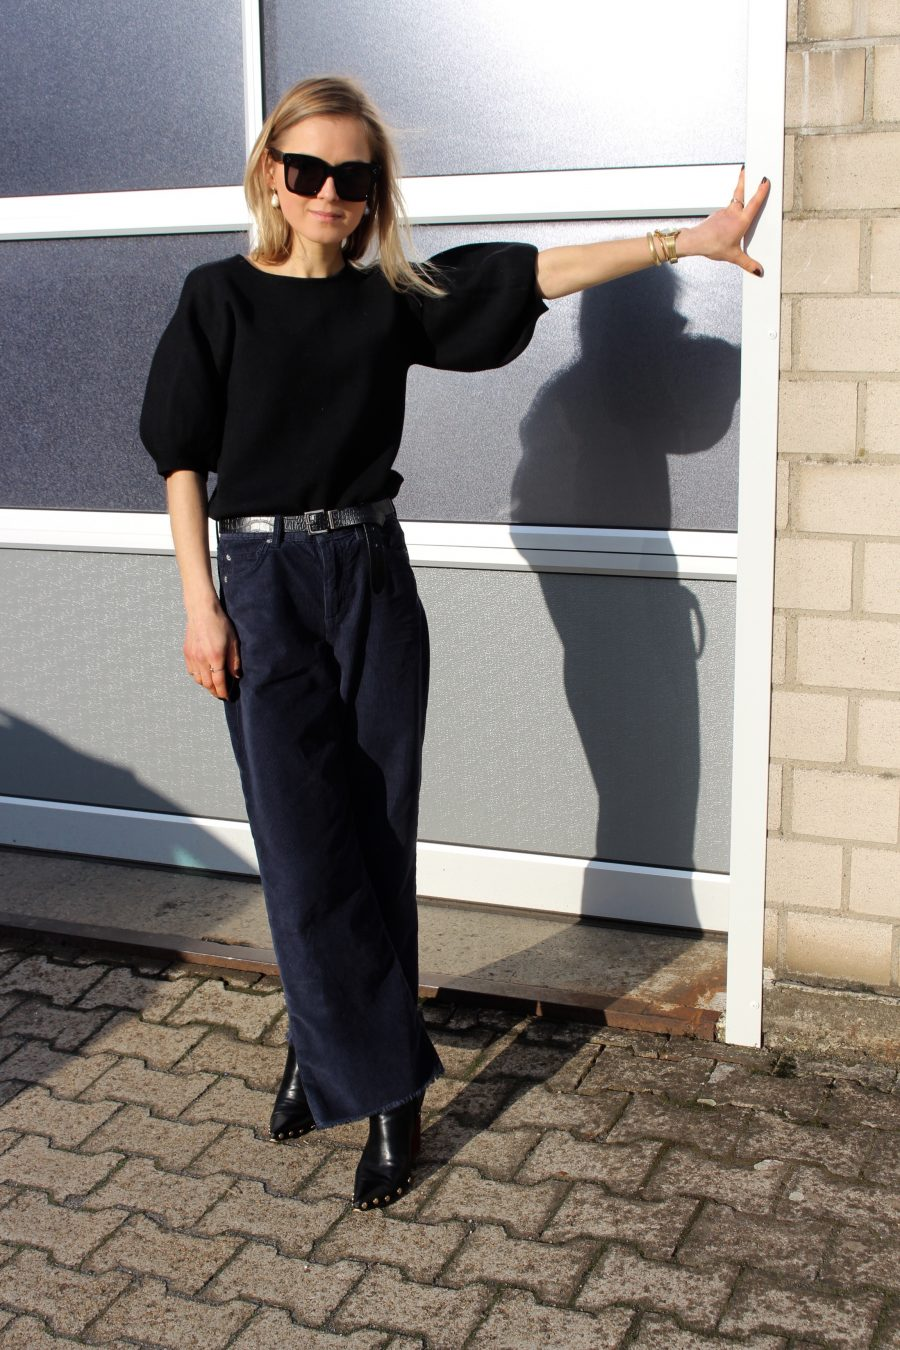 The Cord Trousers fashion blogger